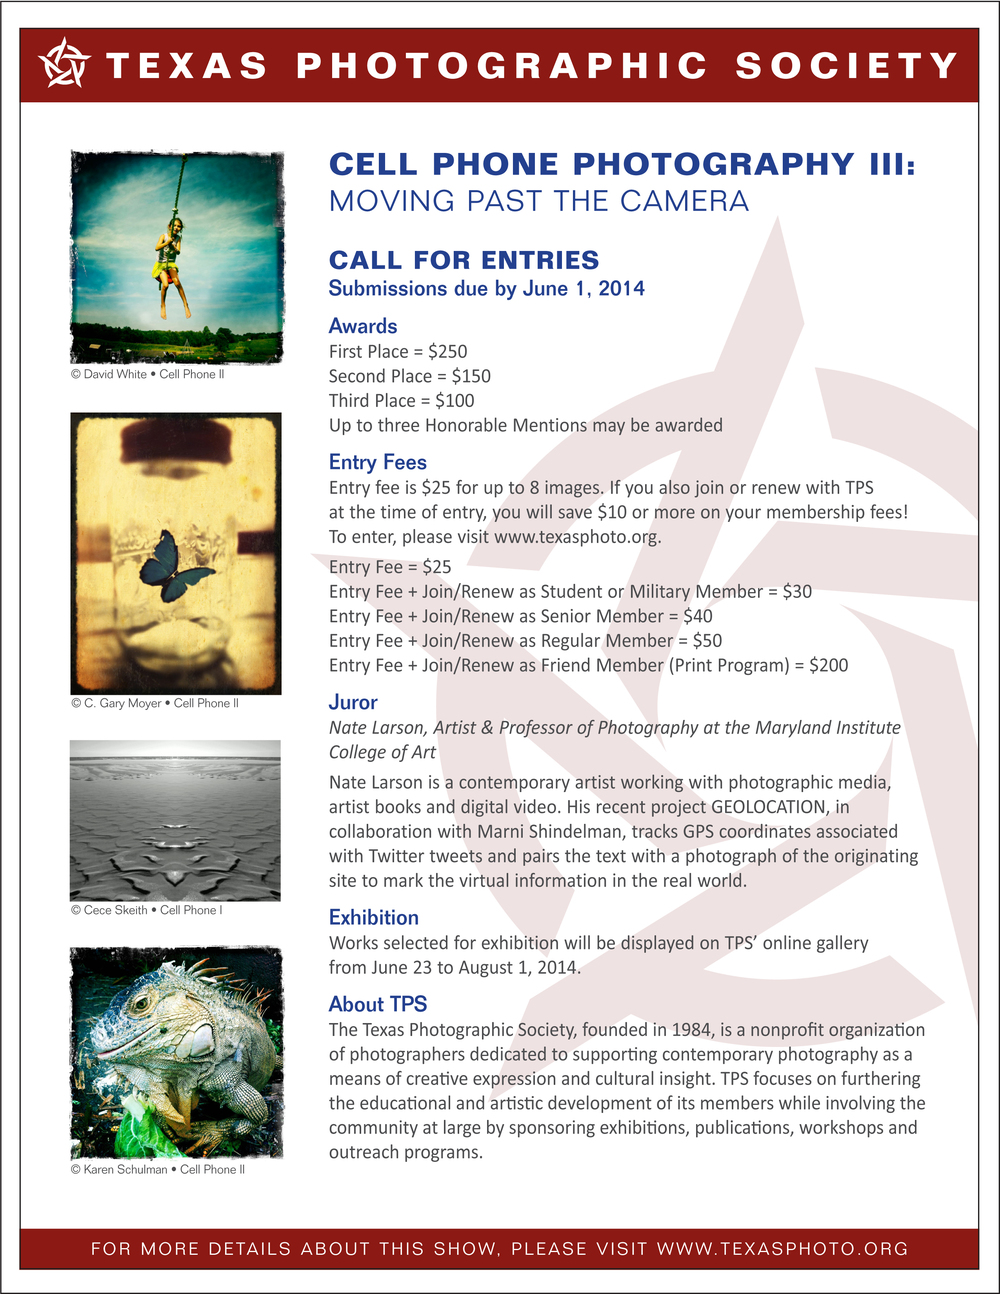 Cell Phone III Flyer.jpg